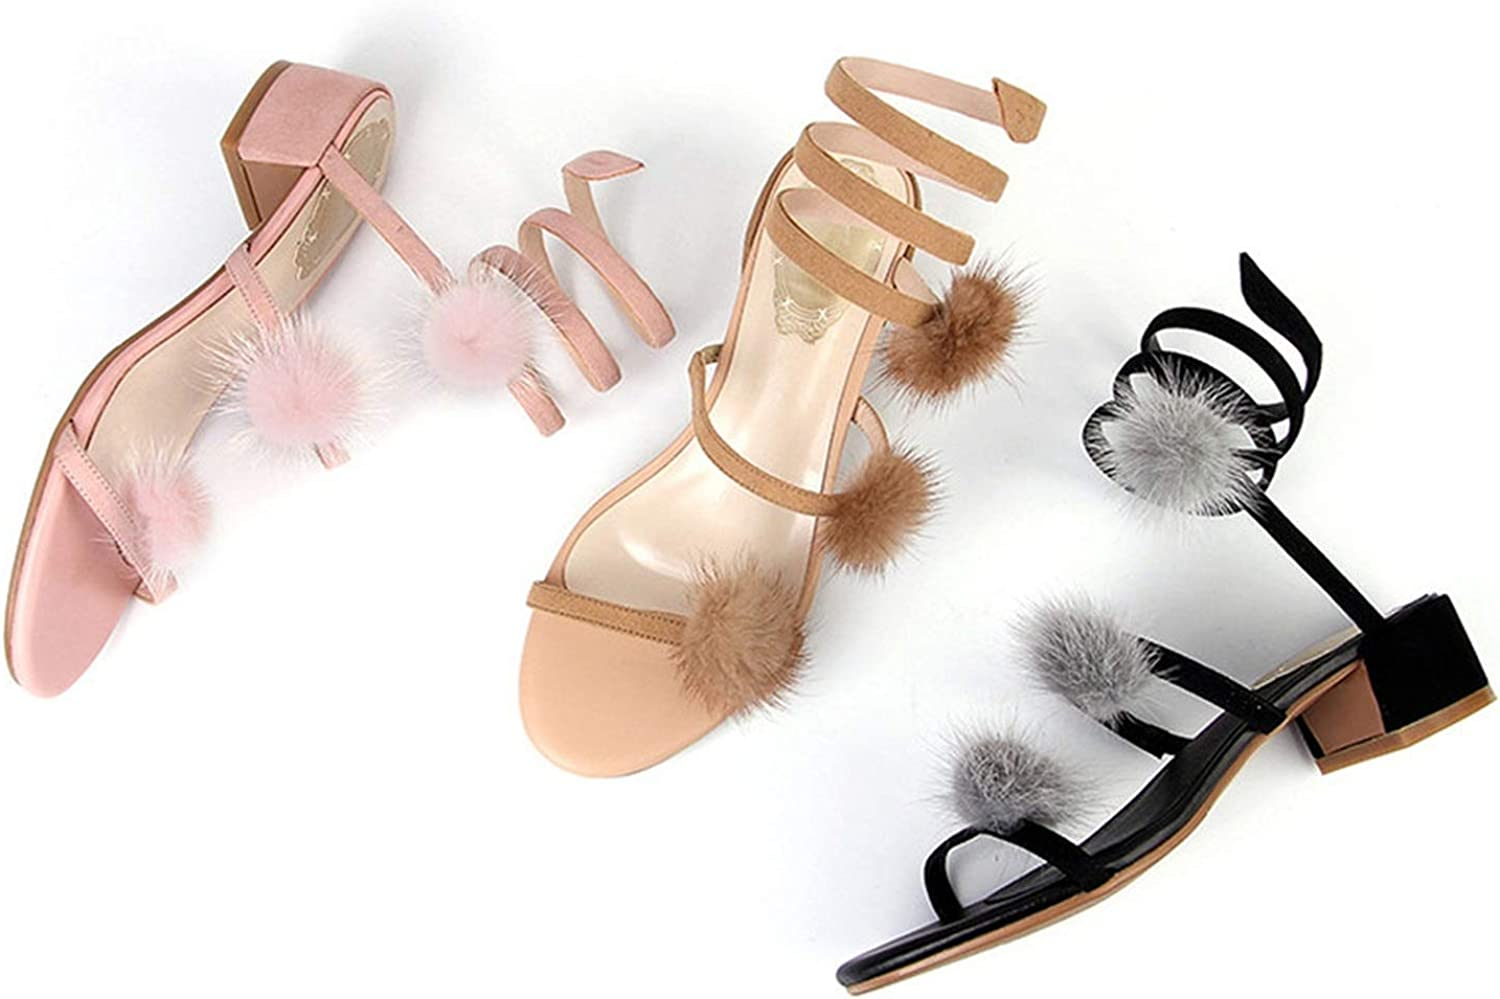 2018 Fashion New Shoes Woman Square Heel Sandals Women Suede Leather med Heels Casual Elegant Black Apricot